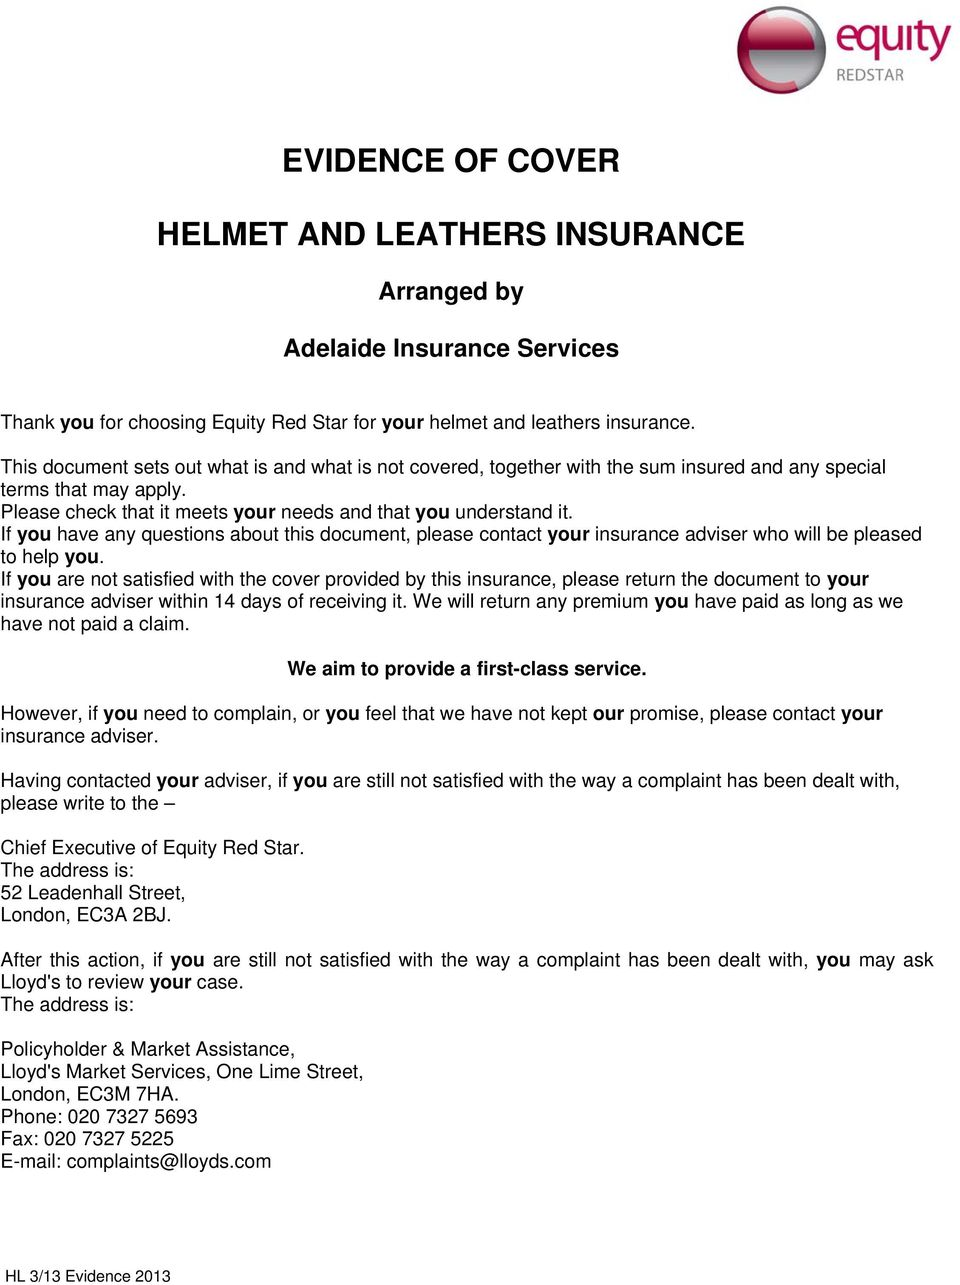 If you have any questions about this document, please contact your insurance adviser who will be pleased to help you.